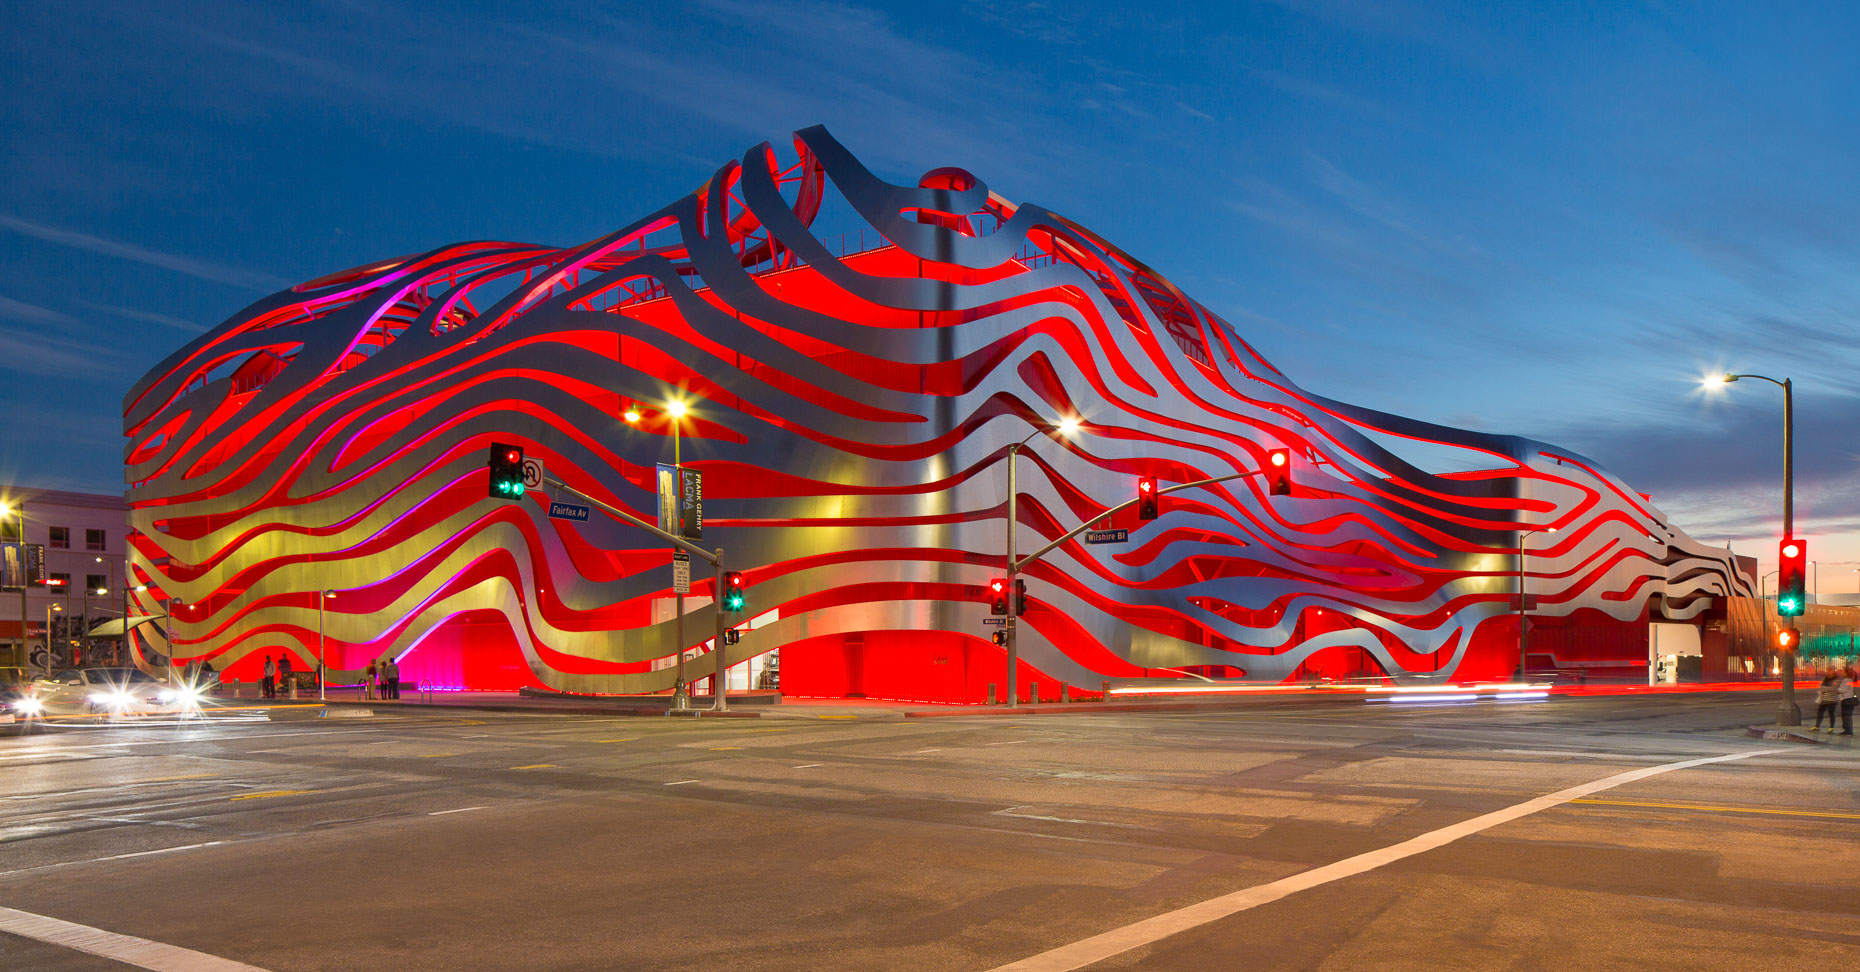 Modern architecture building with bands of metal wrapping around building backlighted with red light. Petersen Automotive Museum in Los Angeles, California. David Zaitz Photography.